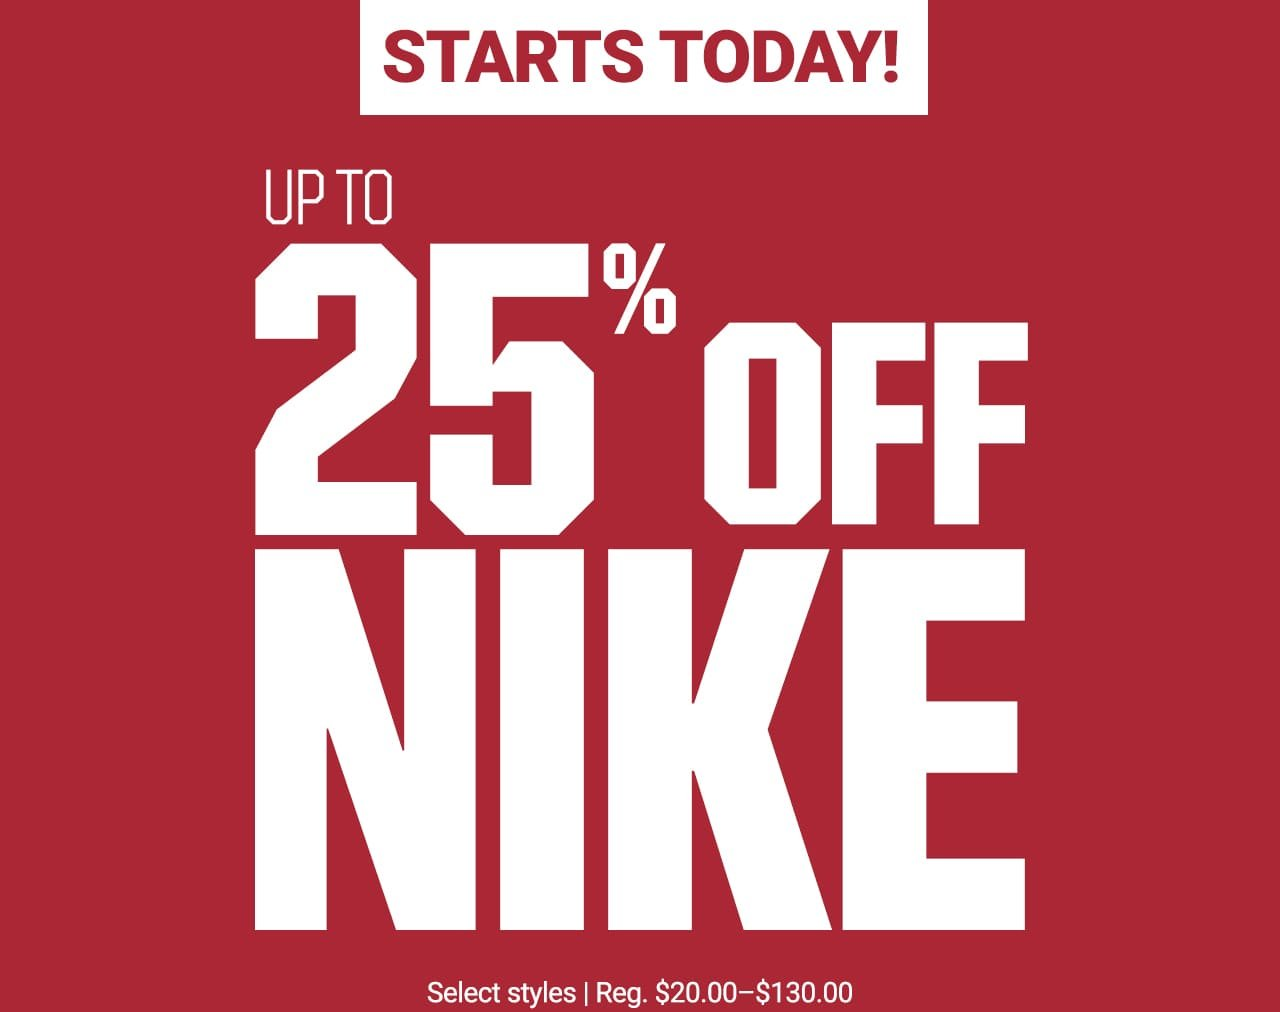 ac73994a7097 The Sports Authority: Up to 25% Off Select Nike Starts NOW! | Milled